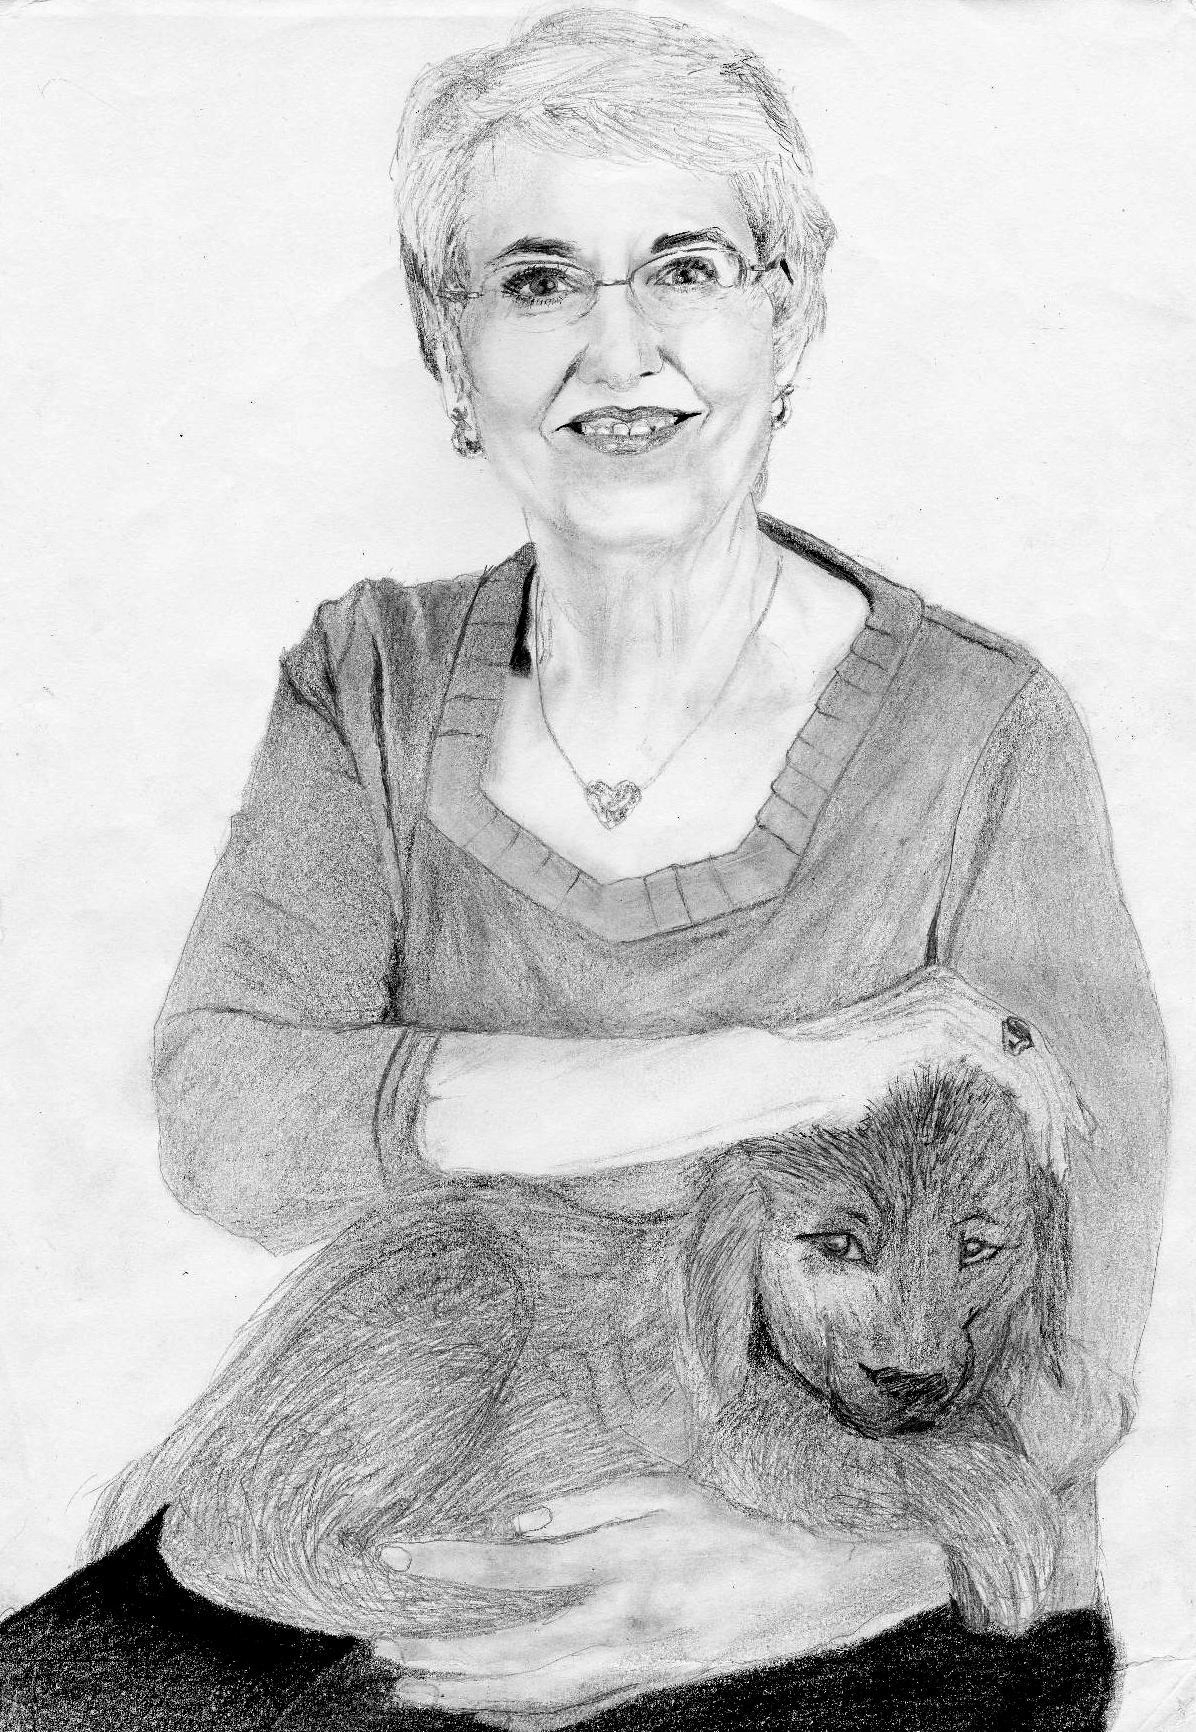 featured image,Judy Helm Wright, Pet Grief Coach, consultation, call today at 406.549.9813 for free consultation